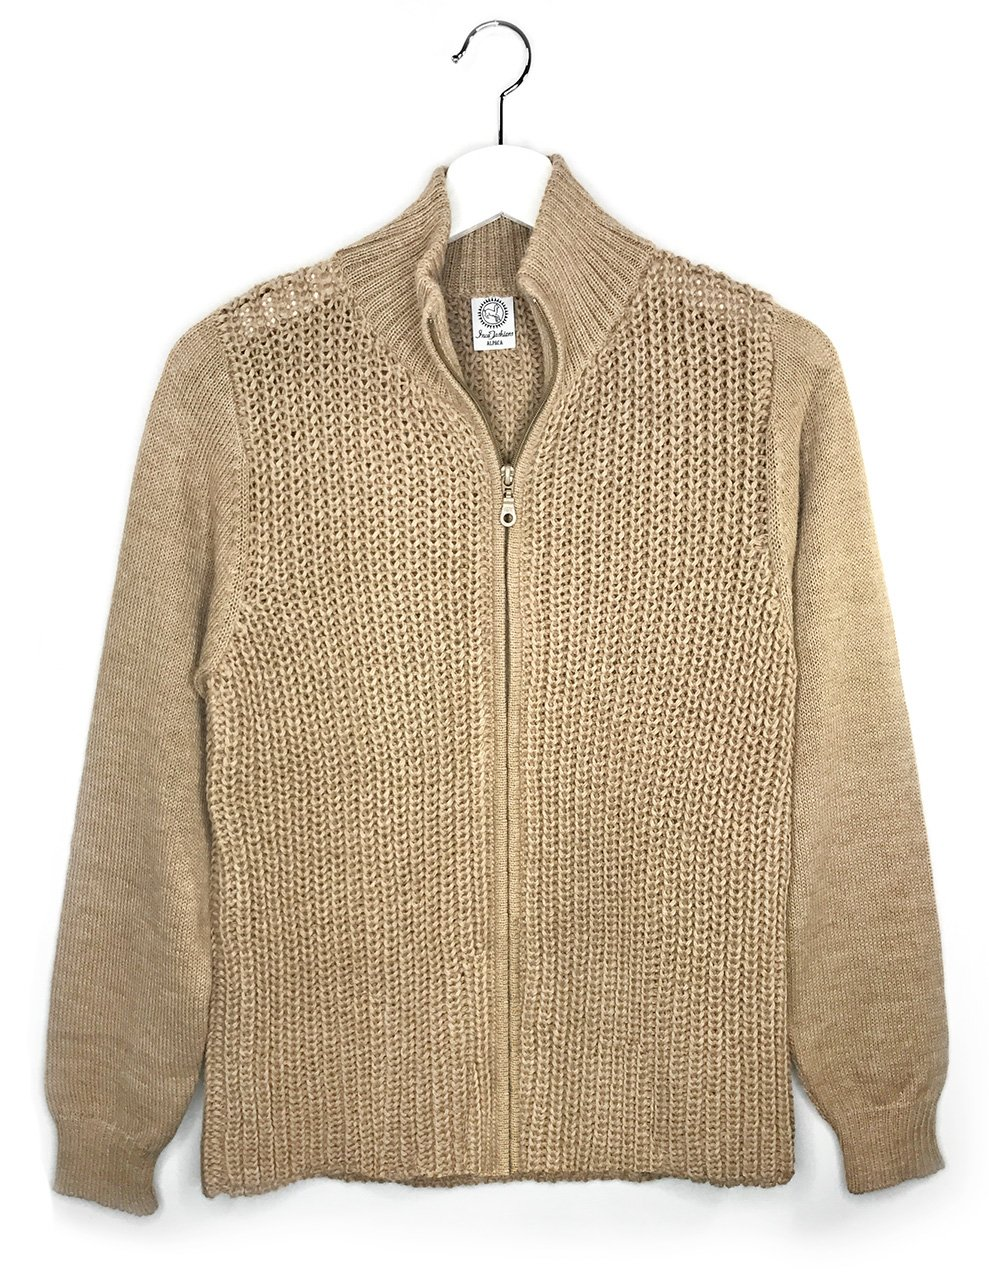 Women's 100% Alpaca Cardigan Sweater - Moto Style with Zip Closure (XLarge, Sandstone)